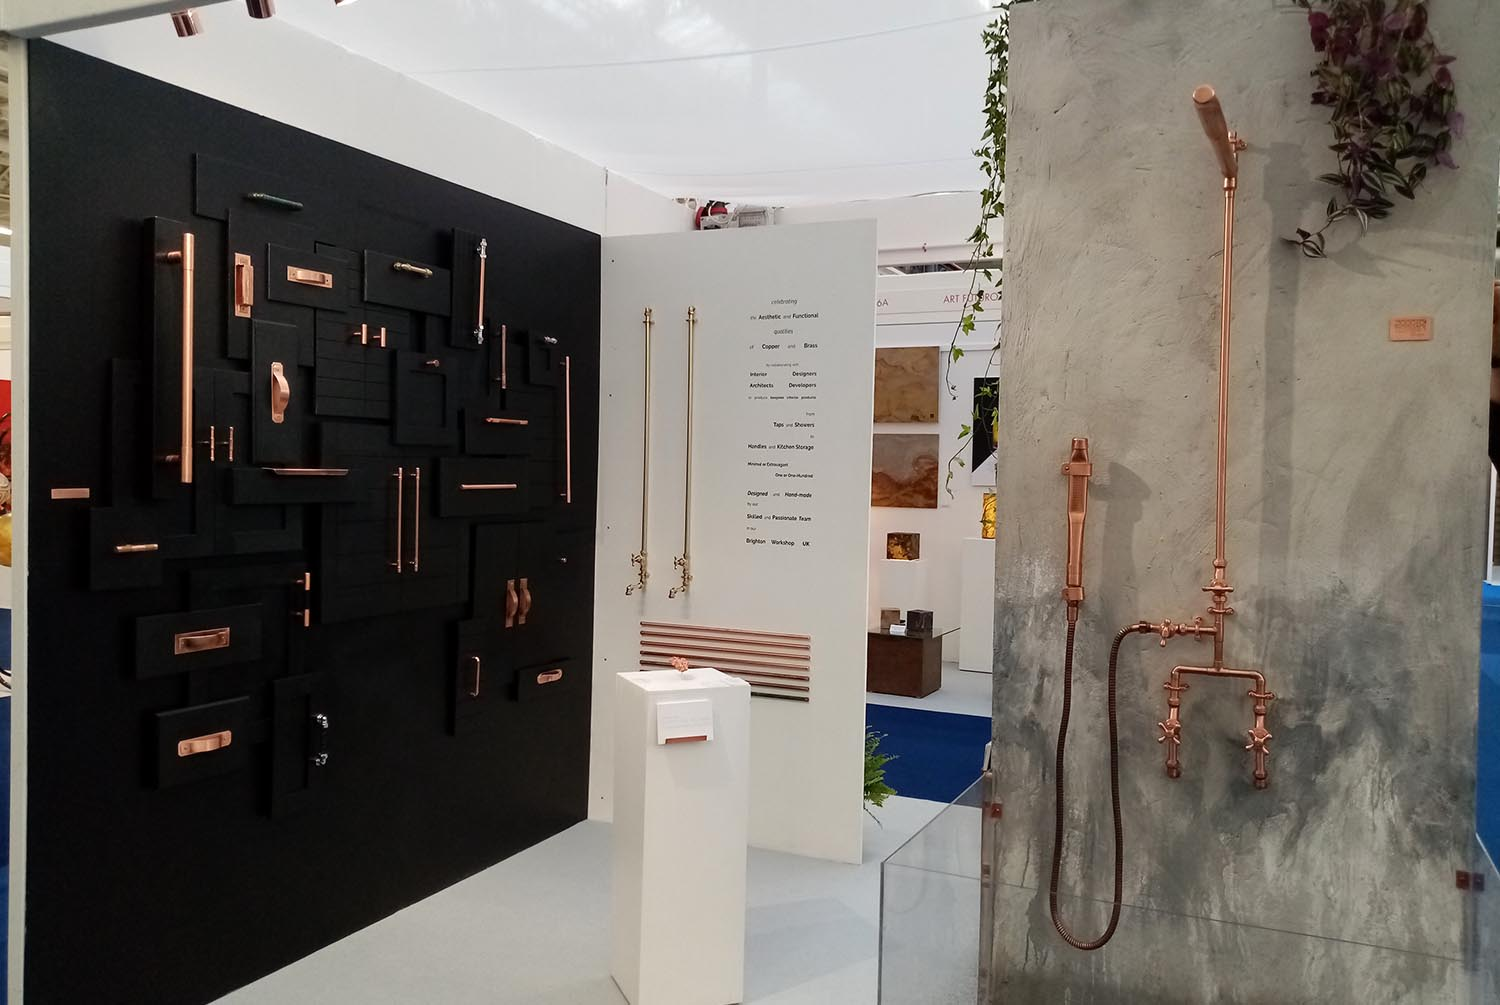 2019-copper-display-showers-exhibition-showers-handles